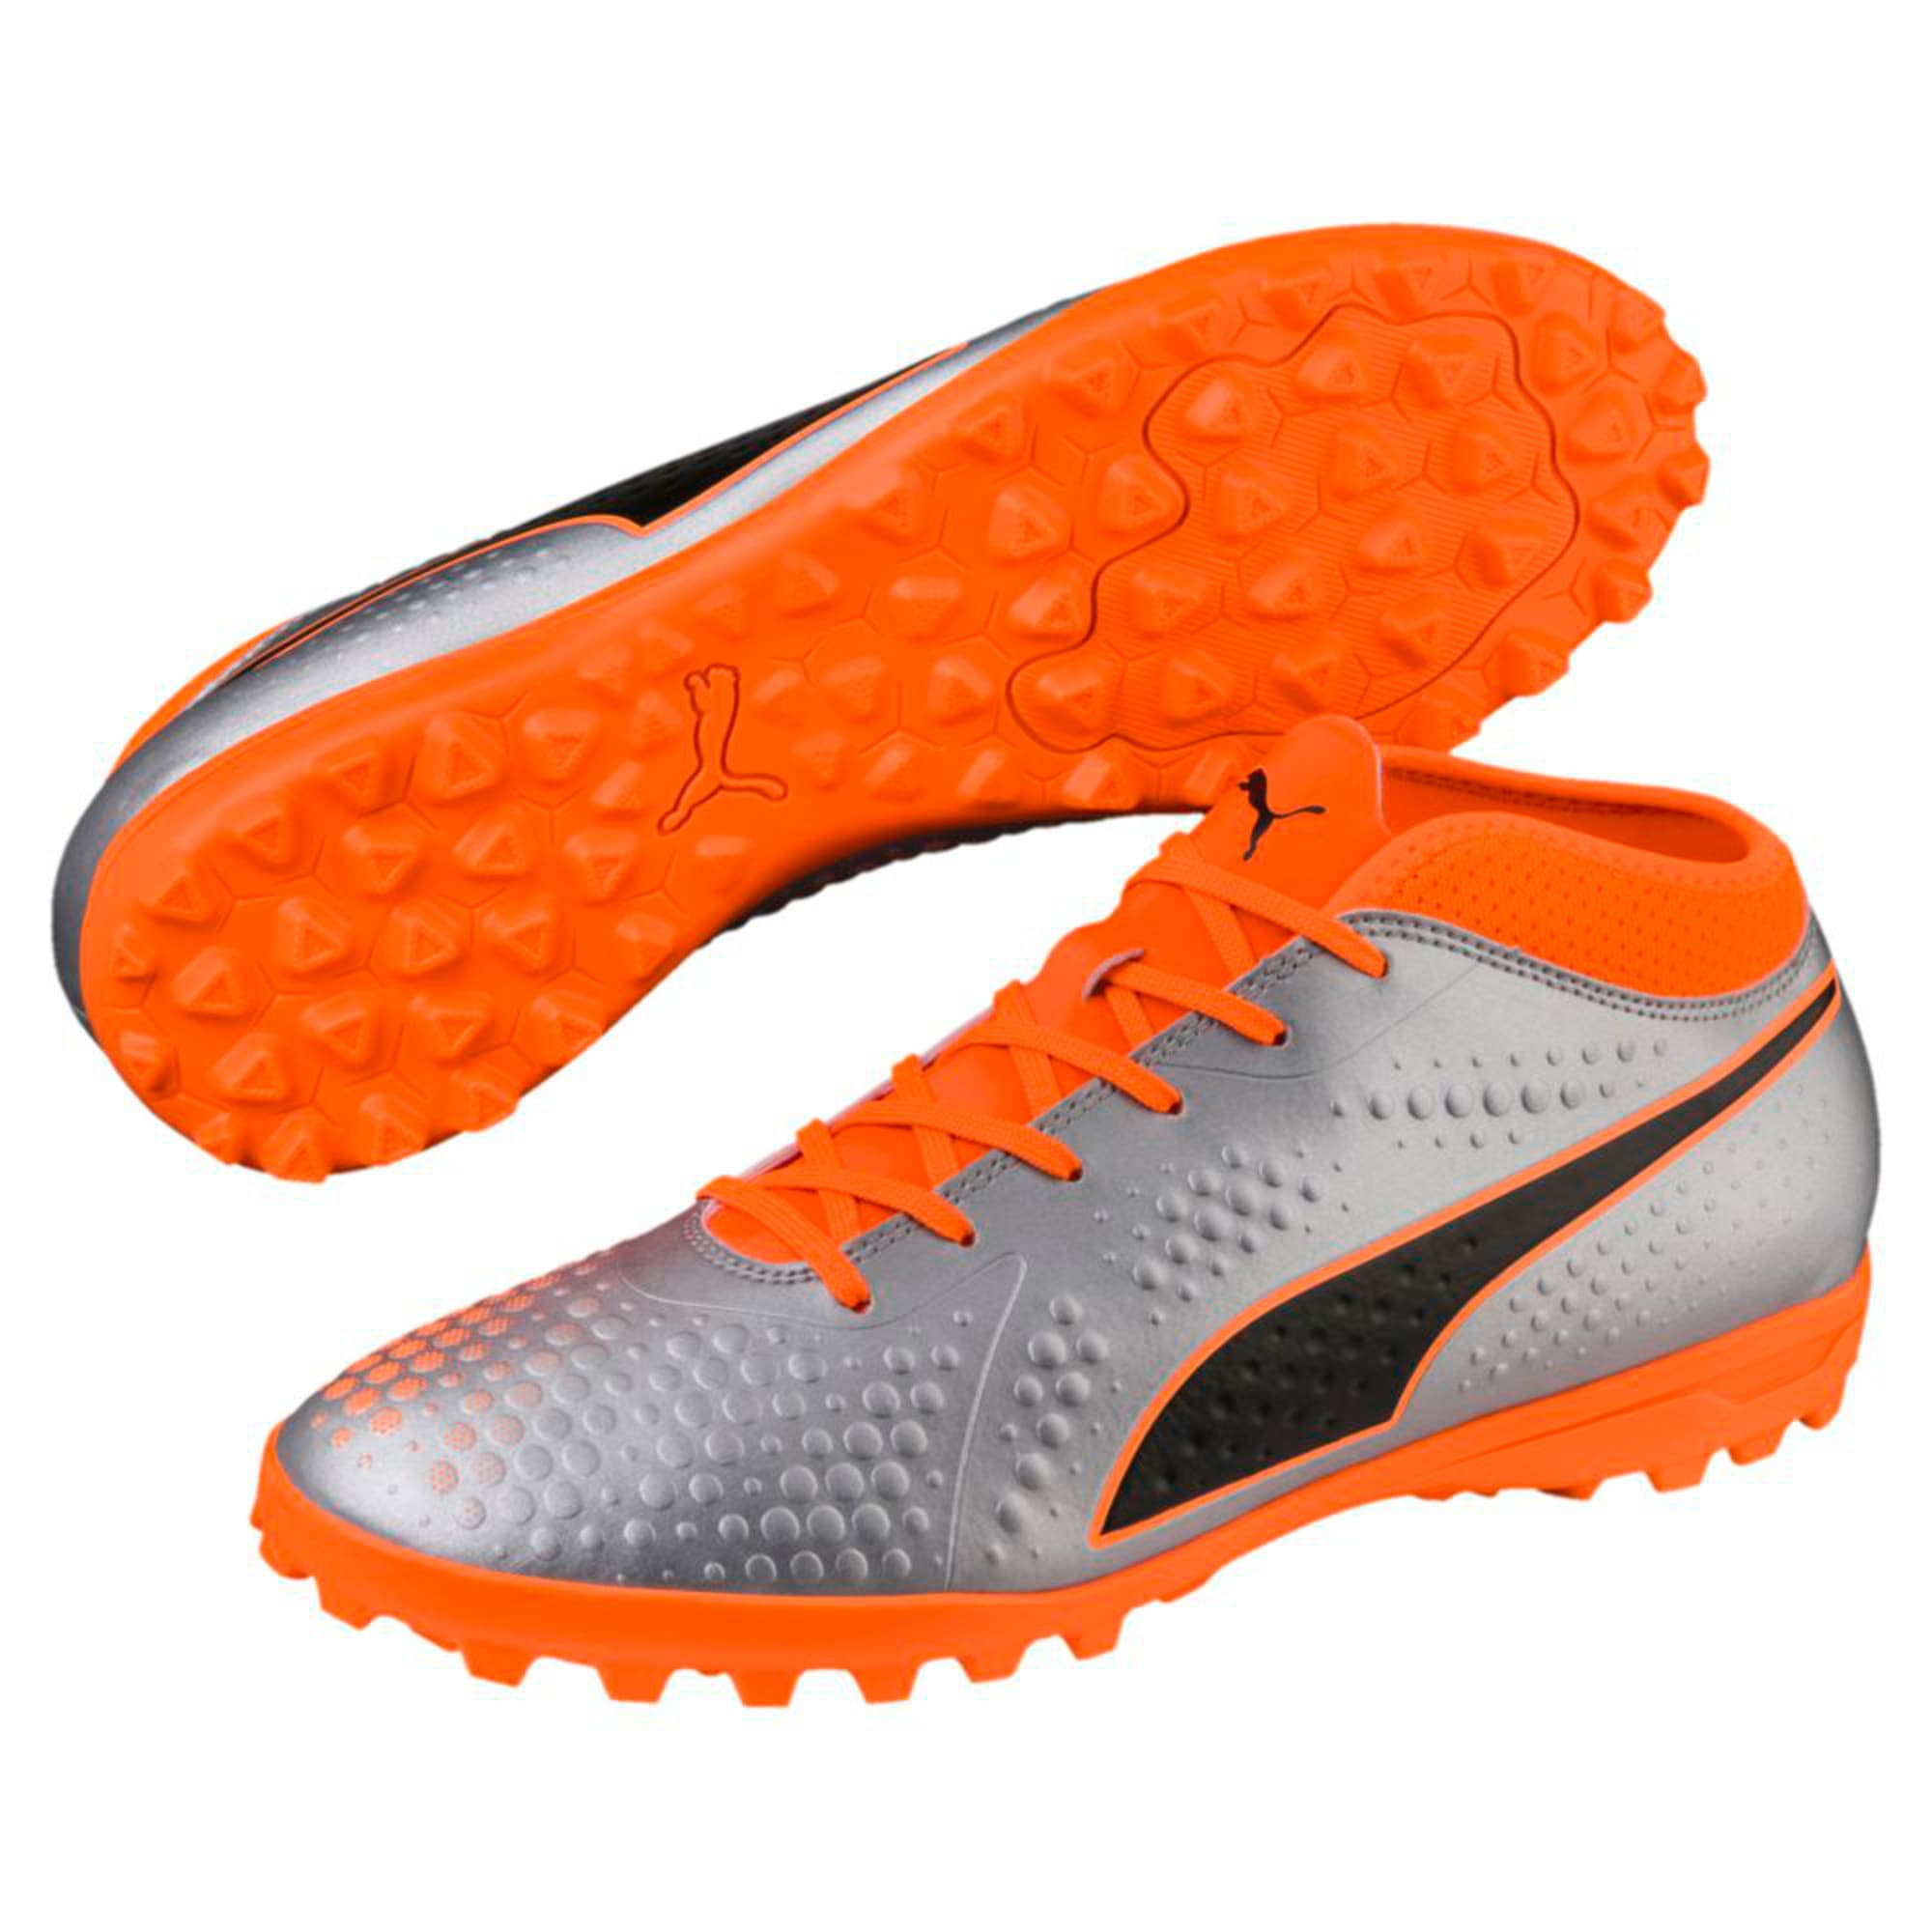 Thumbnail 4 of PUMA ONE 4 Synthetic TT Men's Football Boots, Silver-Orange-Black, medium-IND